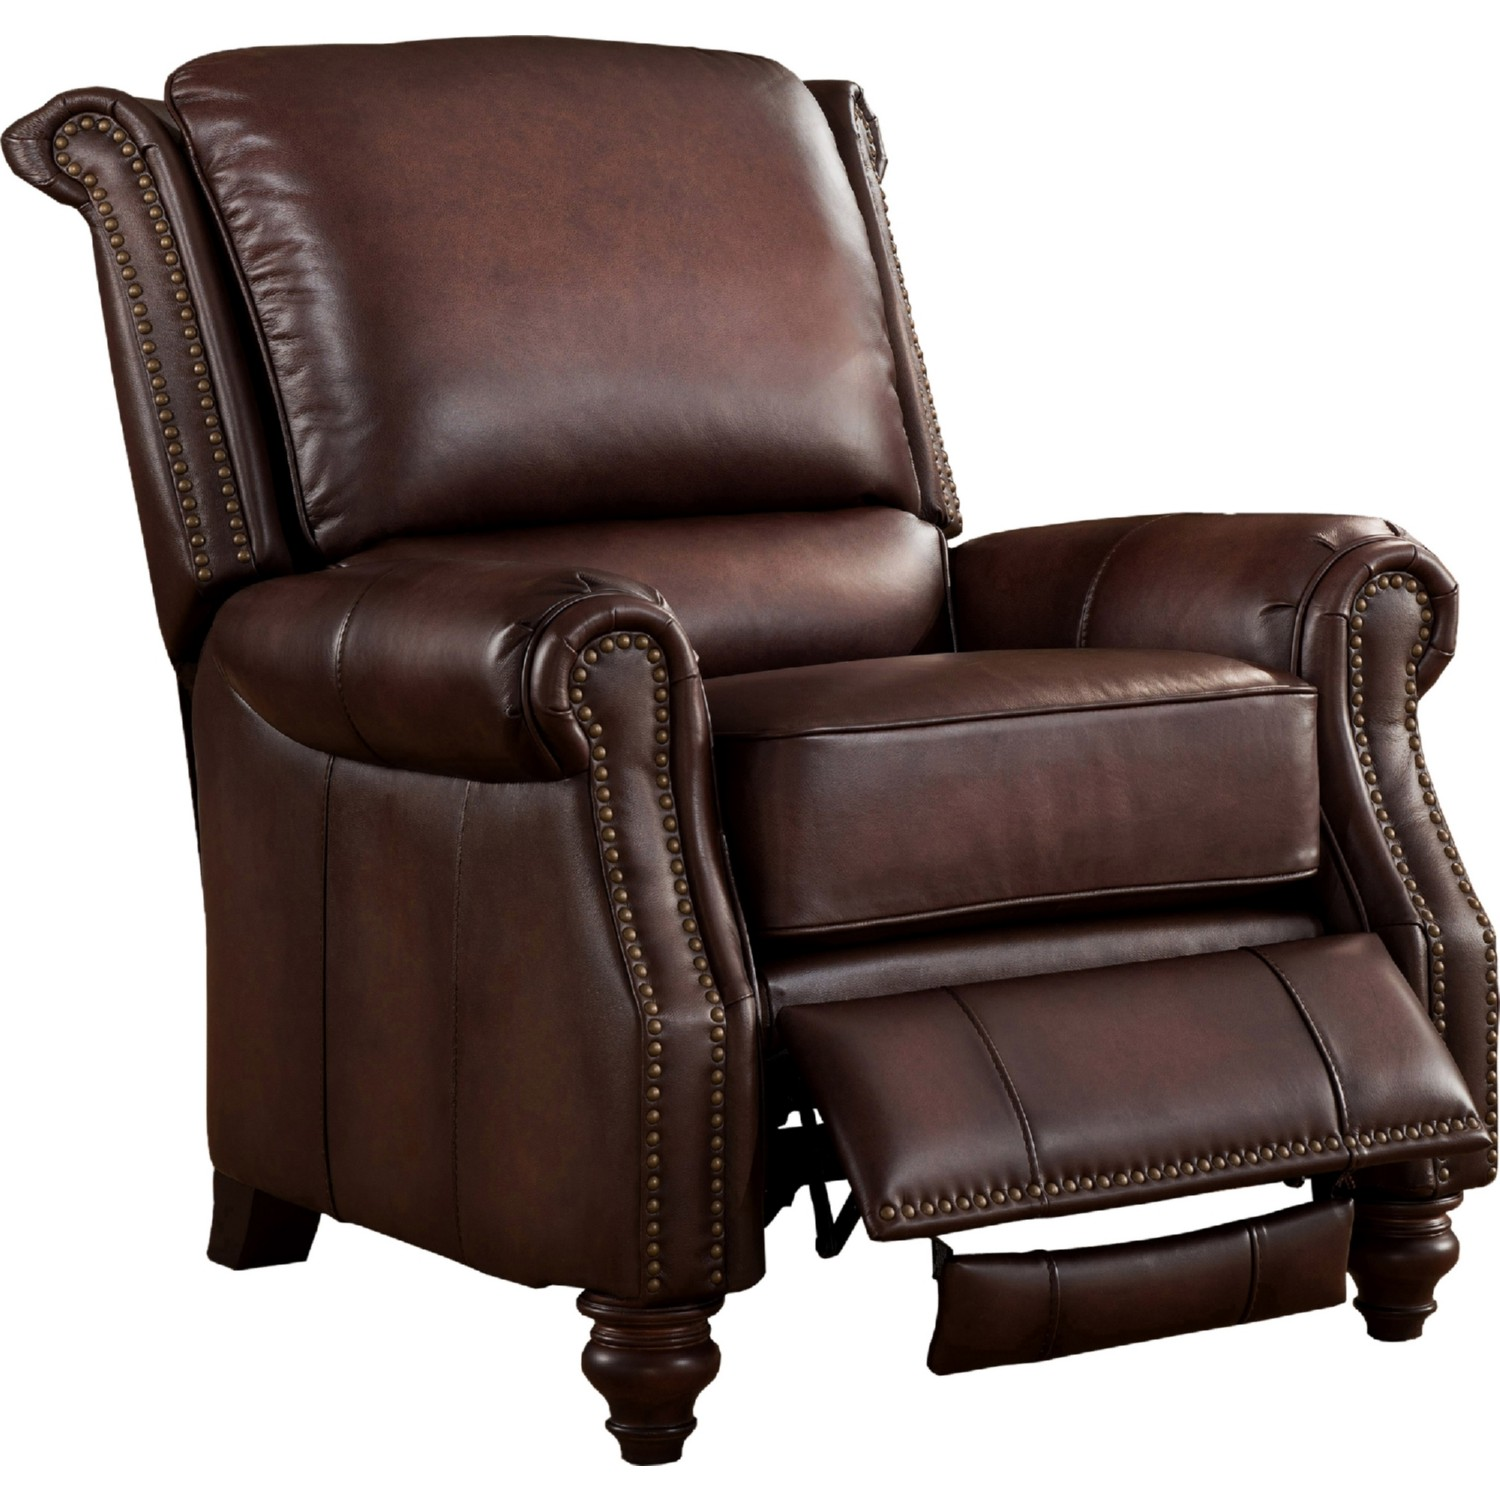 AMAX Leather ChurchillC Churchill 100% Leather Reclining Chair in